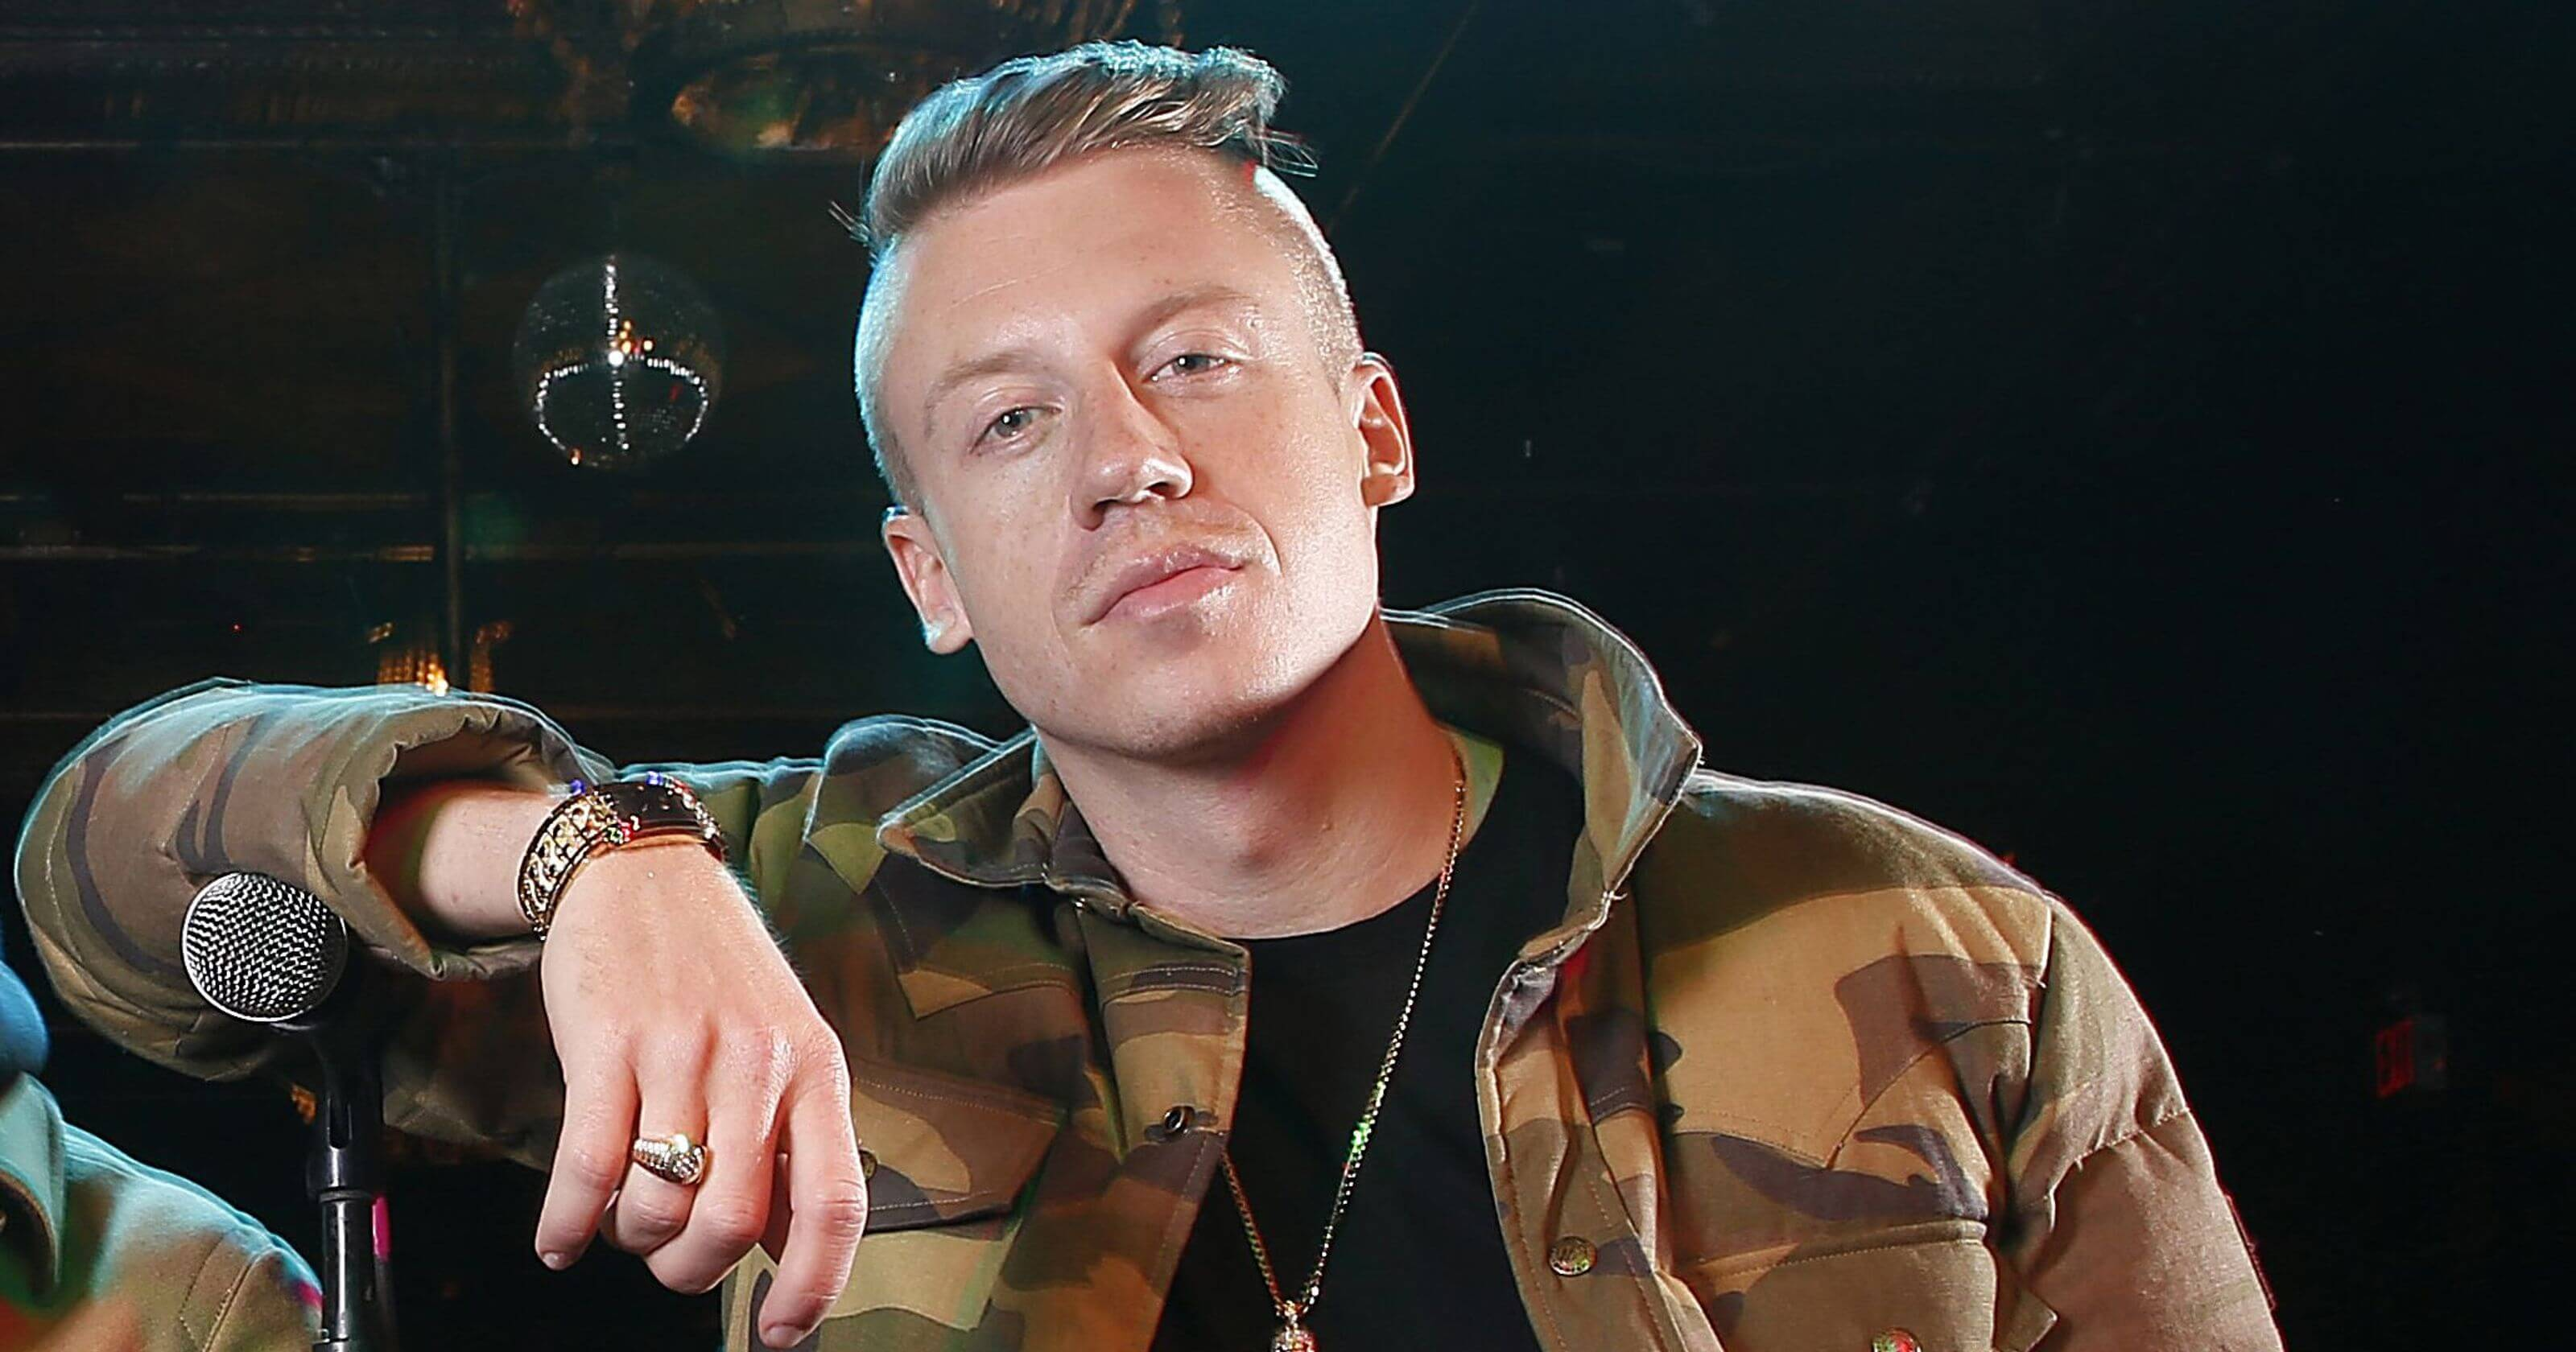 Macklemore - Did You Know?